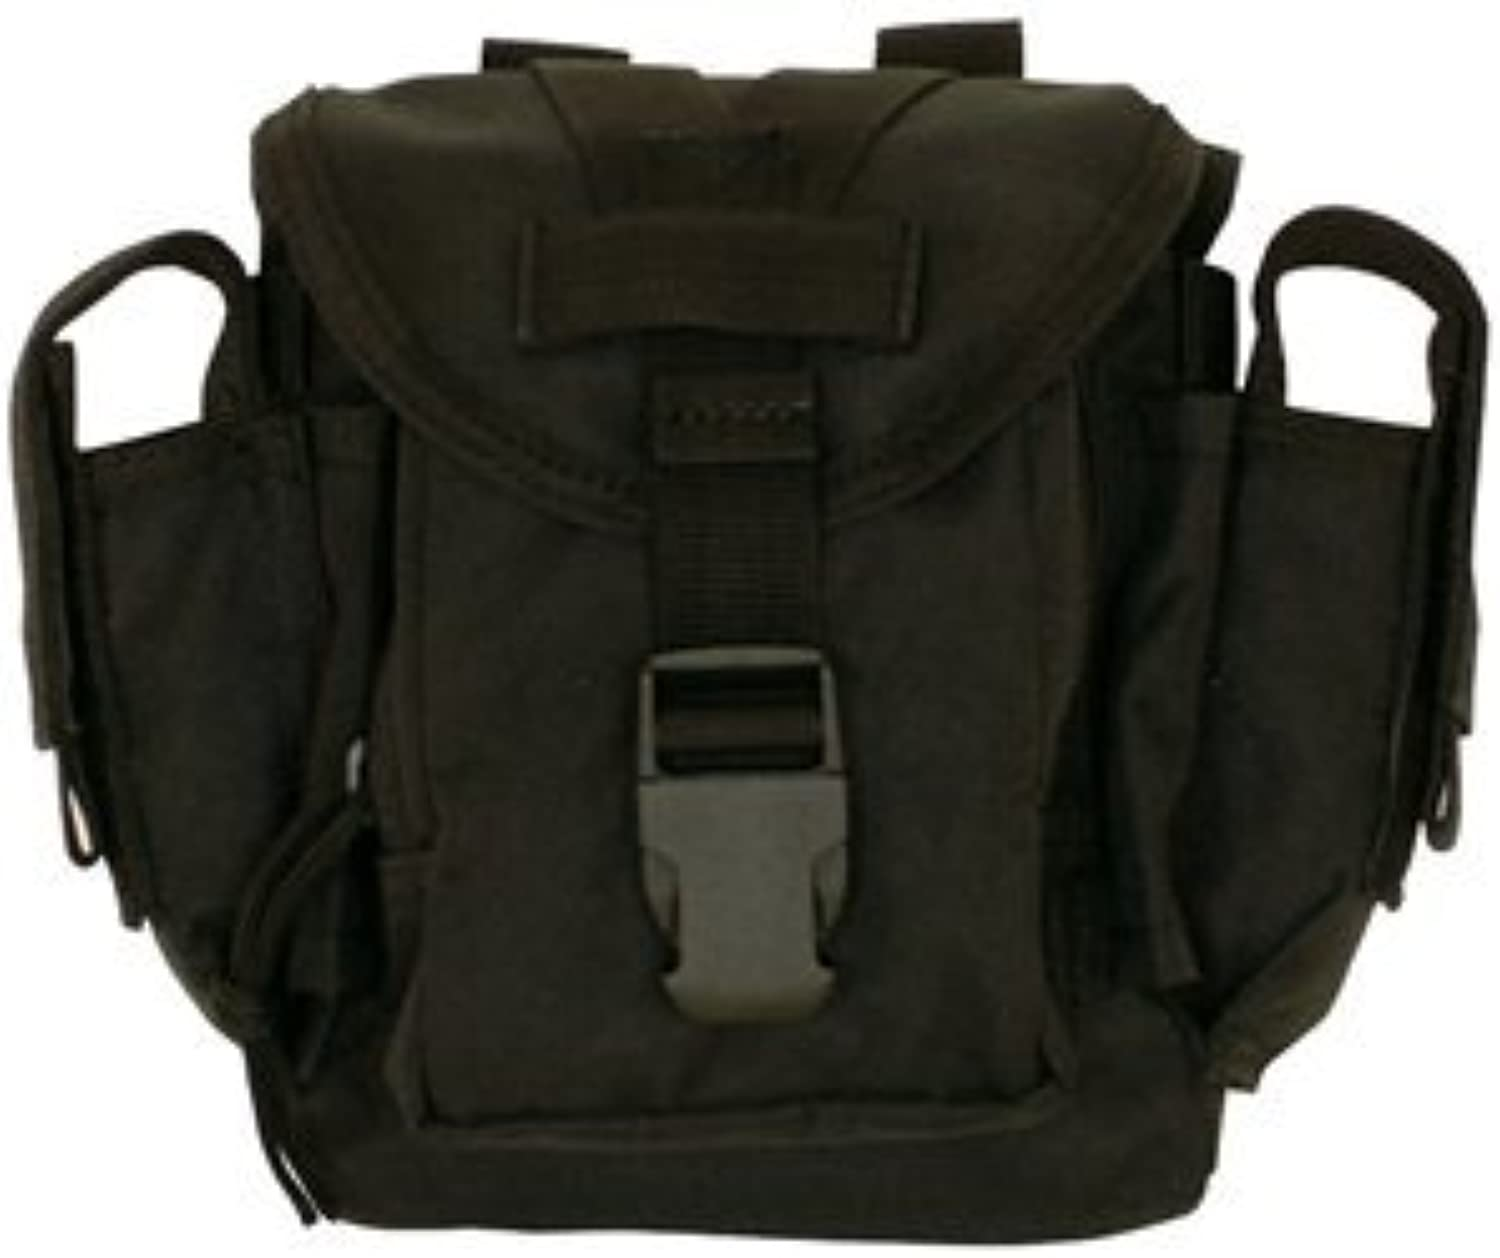 Advanced Tactical Dump Pouch Black by Fox Outdoor